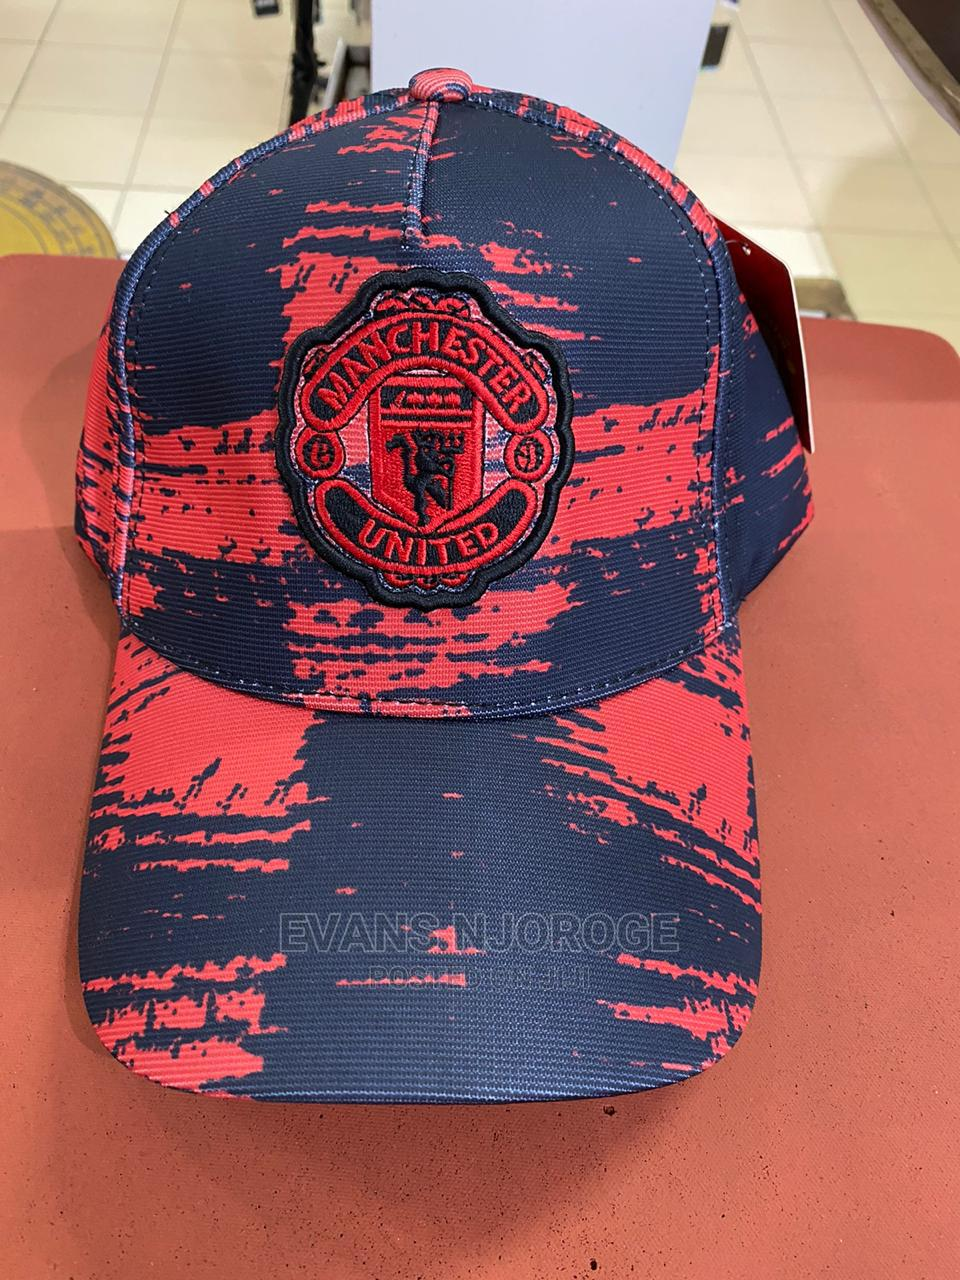 Archive: Authentic Manchester United Baseball Caps.